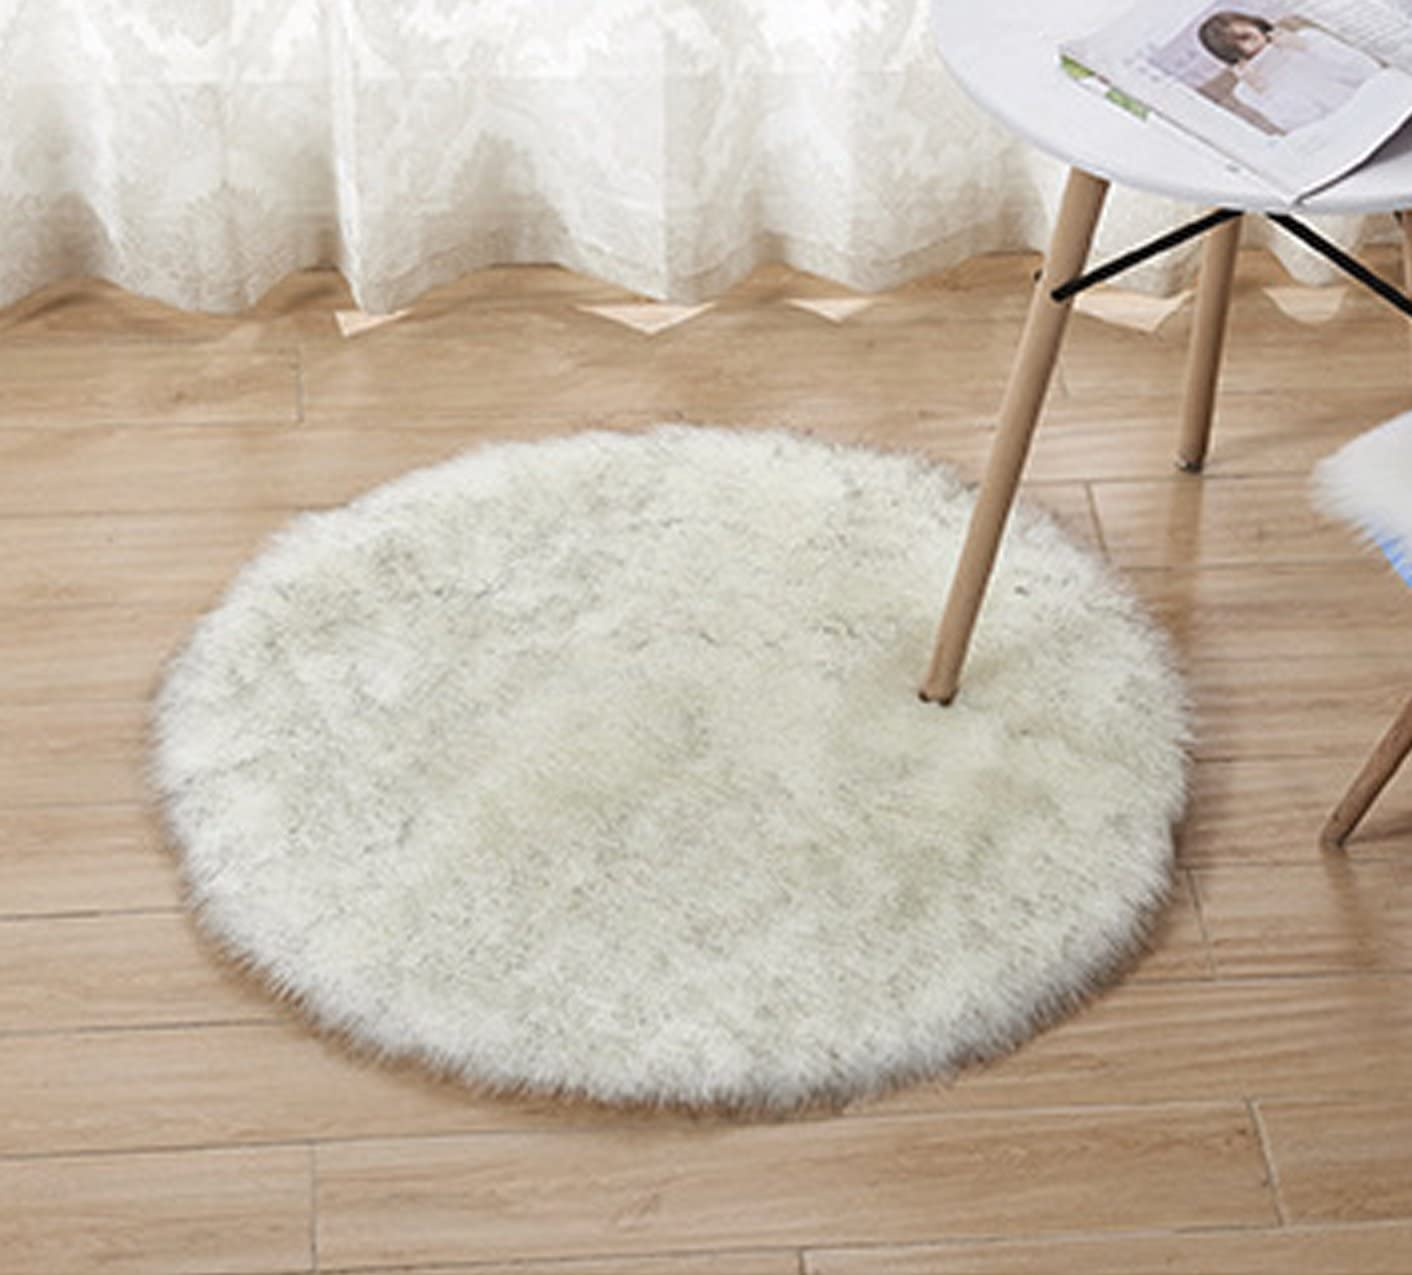 Faux Fur Sheepskin Max 68% OFF SALENEW very popular Area Rug Baby Rugs Home Fluffy Bedroom D